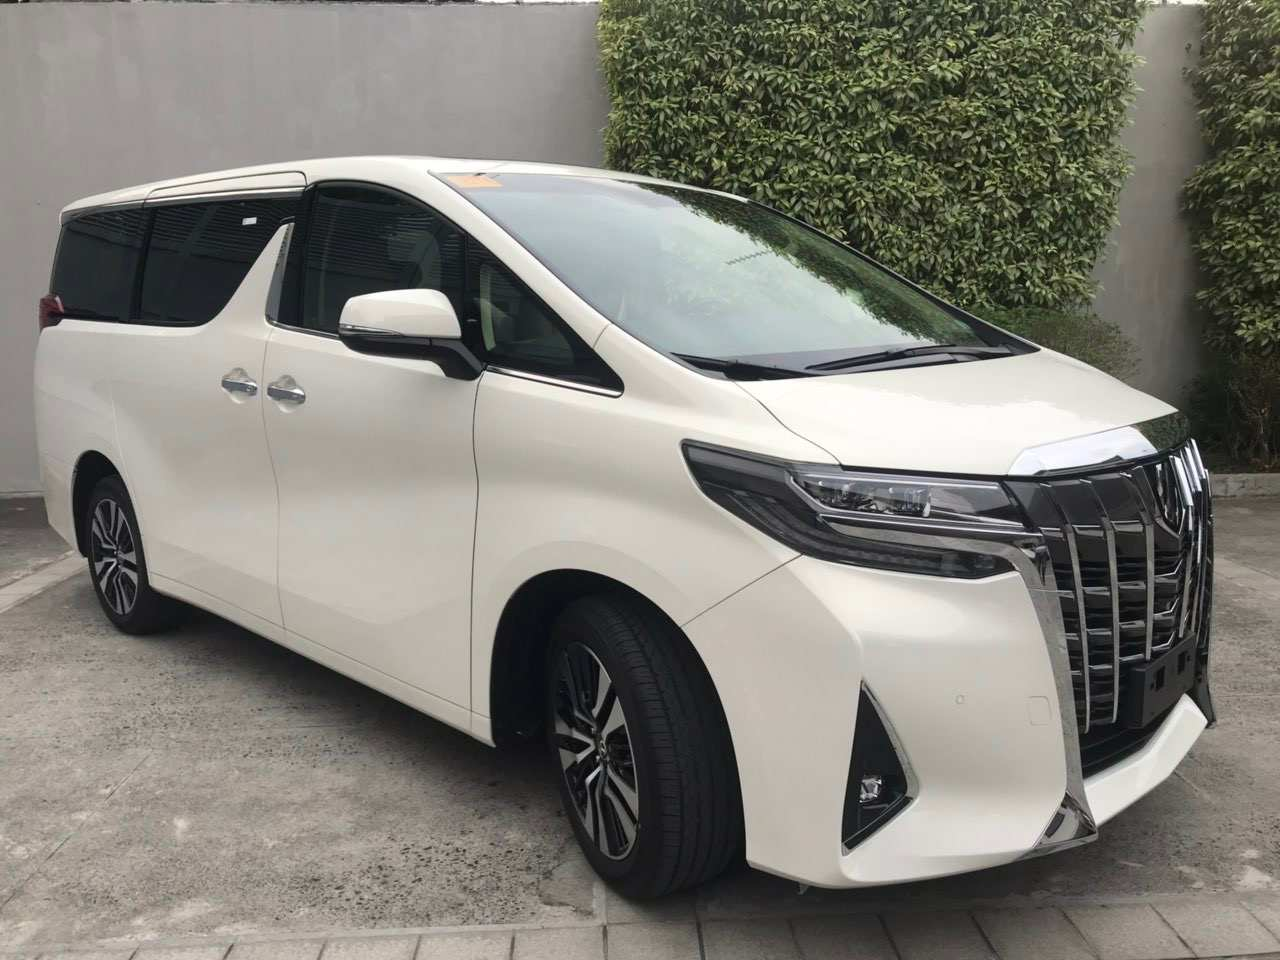 96 All New 2019 Toyota Alphard Price And Release Date